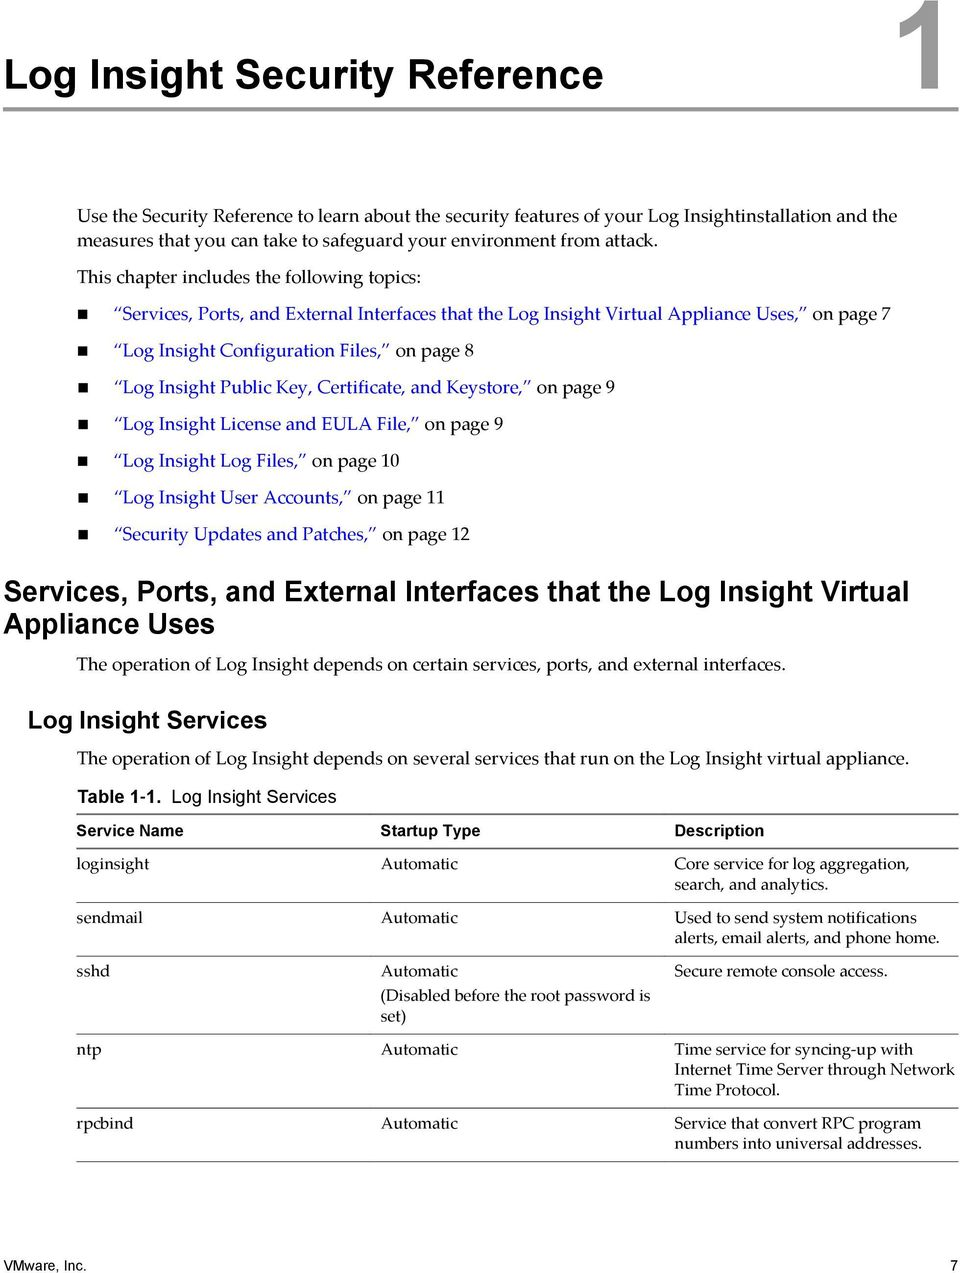 This chapter includes the following topics: Services, Ports, and External Interfaces that the Log Insight Virtual Appliance Uses, on page 7 Log Insight Configuration Files, on page 8 Log Insight